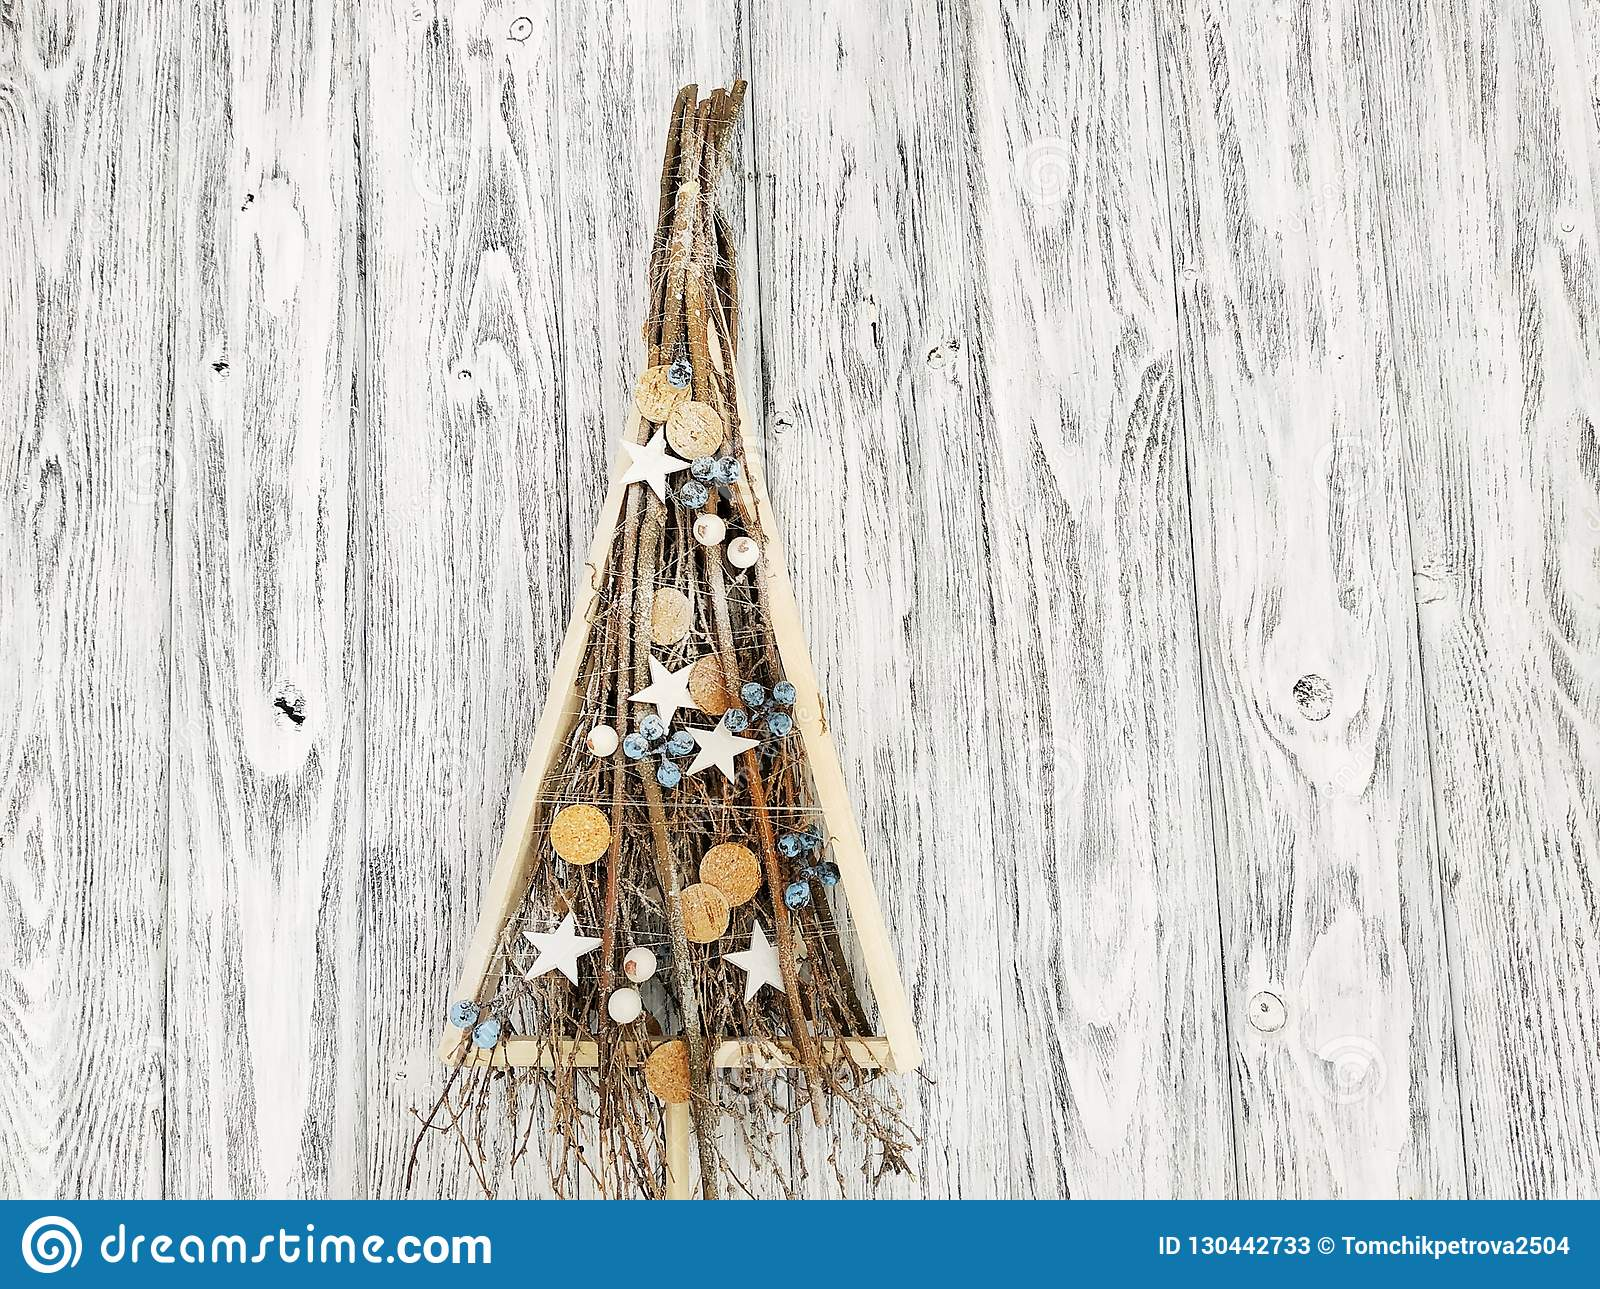 Handmade Wooden Christmas Tree With Winter Christmas Decoration Stock Image Image Of Tree Branches 130442733